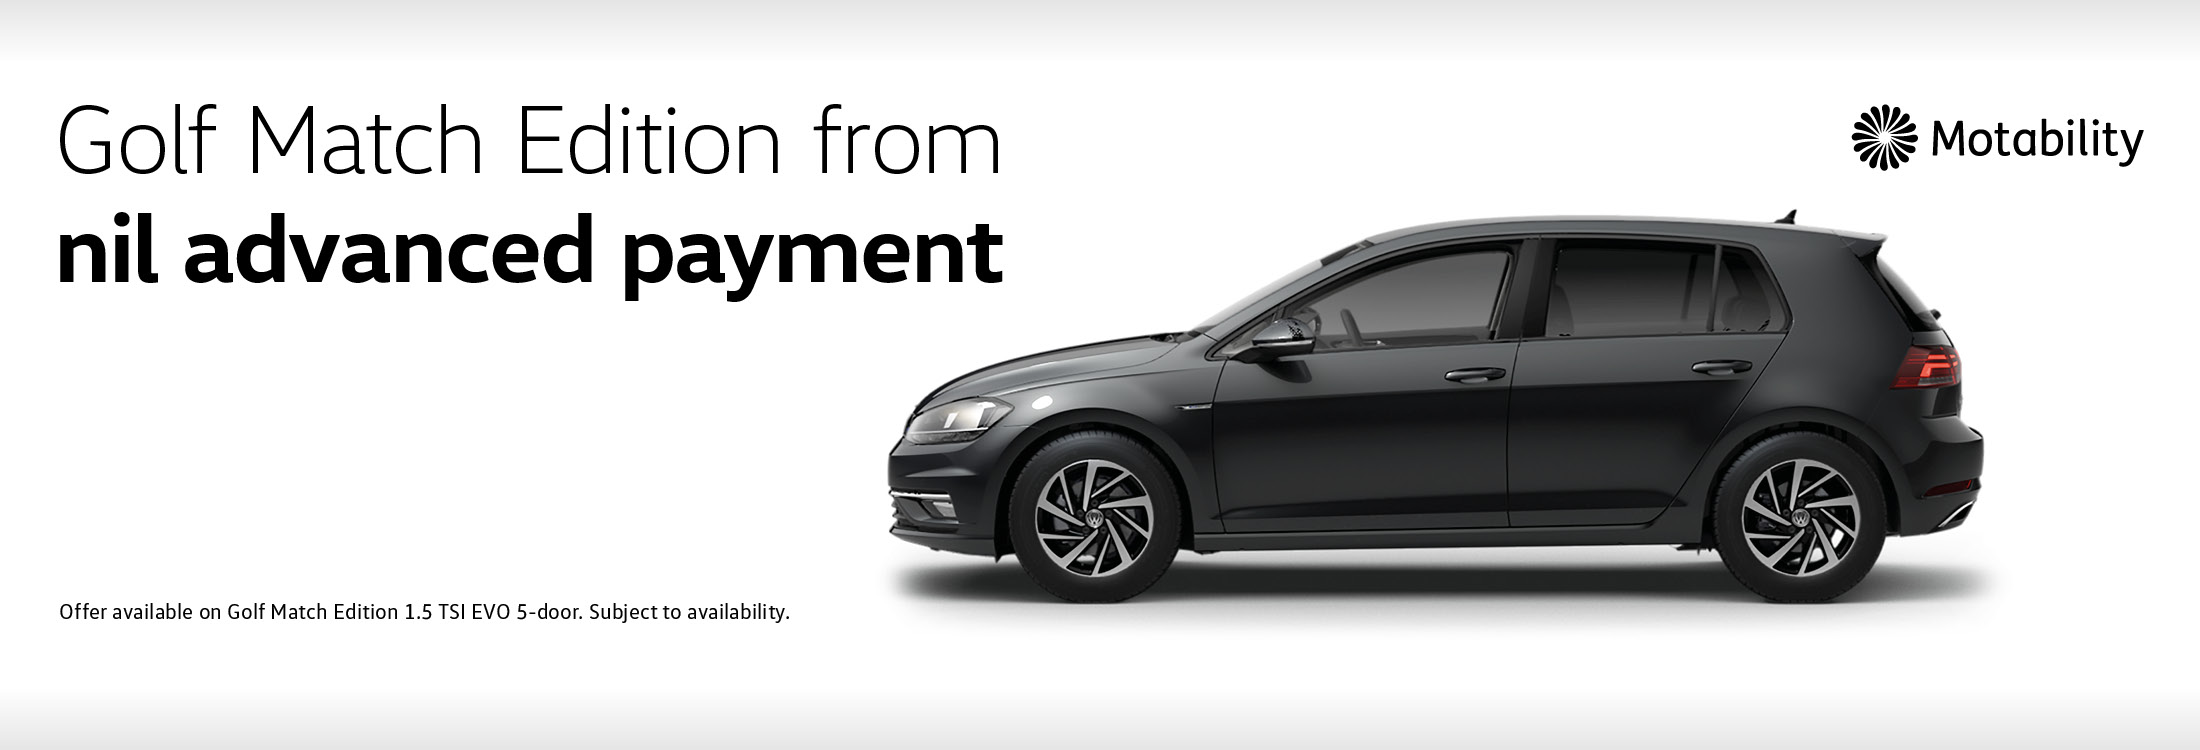 golf match edition nil advanced payment